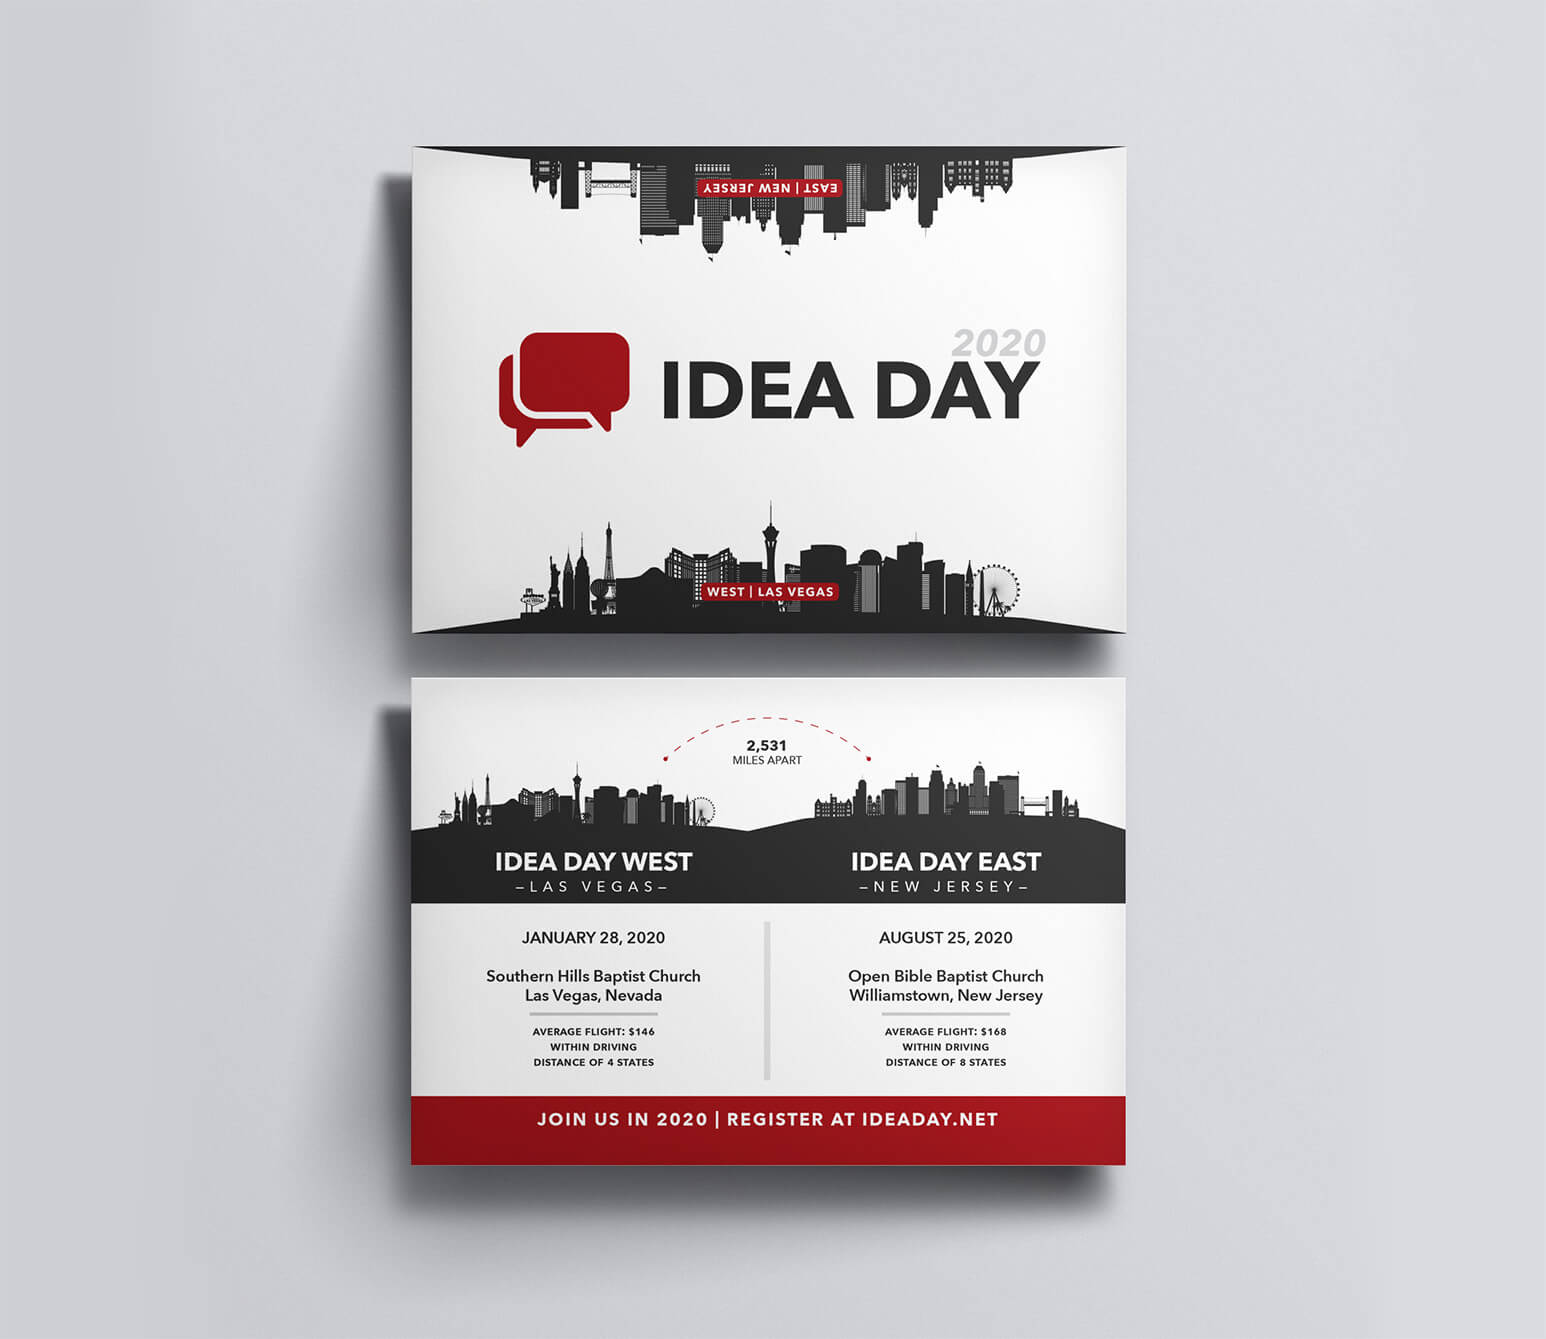 Idea Day Postcard designed by Stephen Houk Designs.